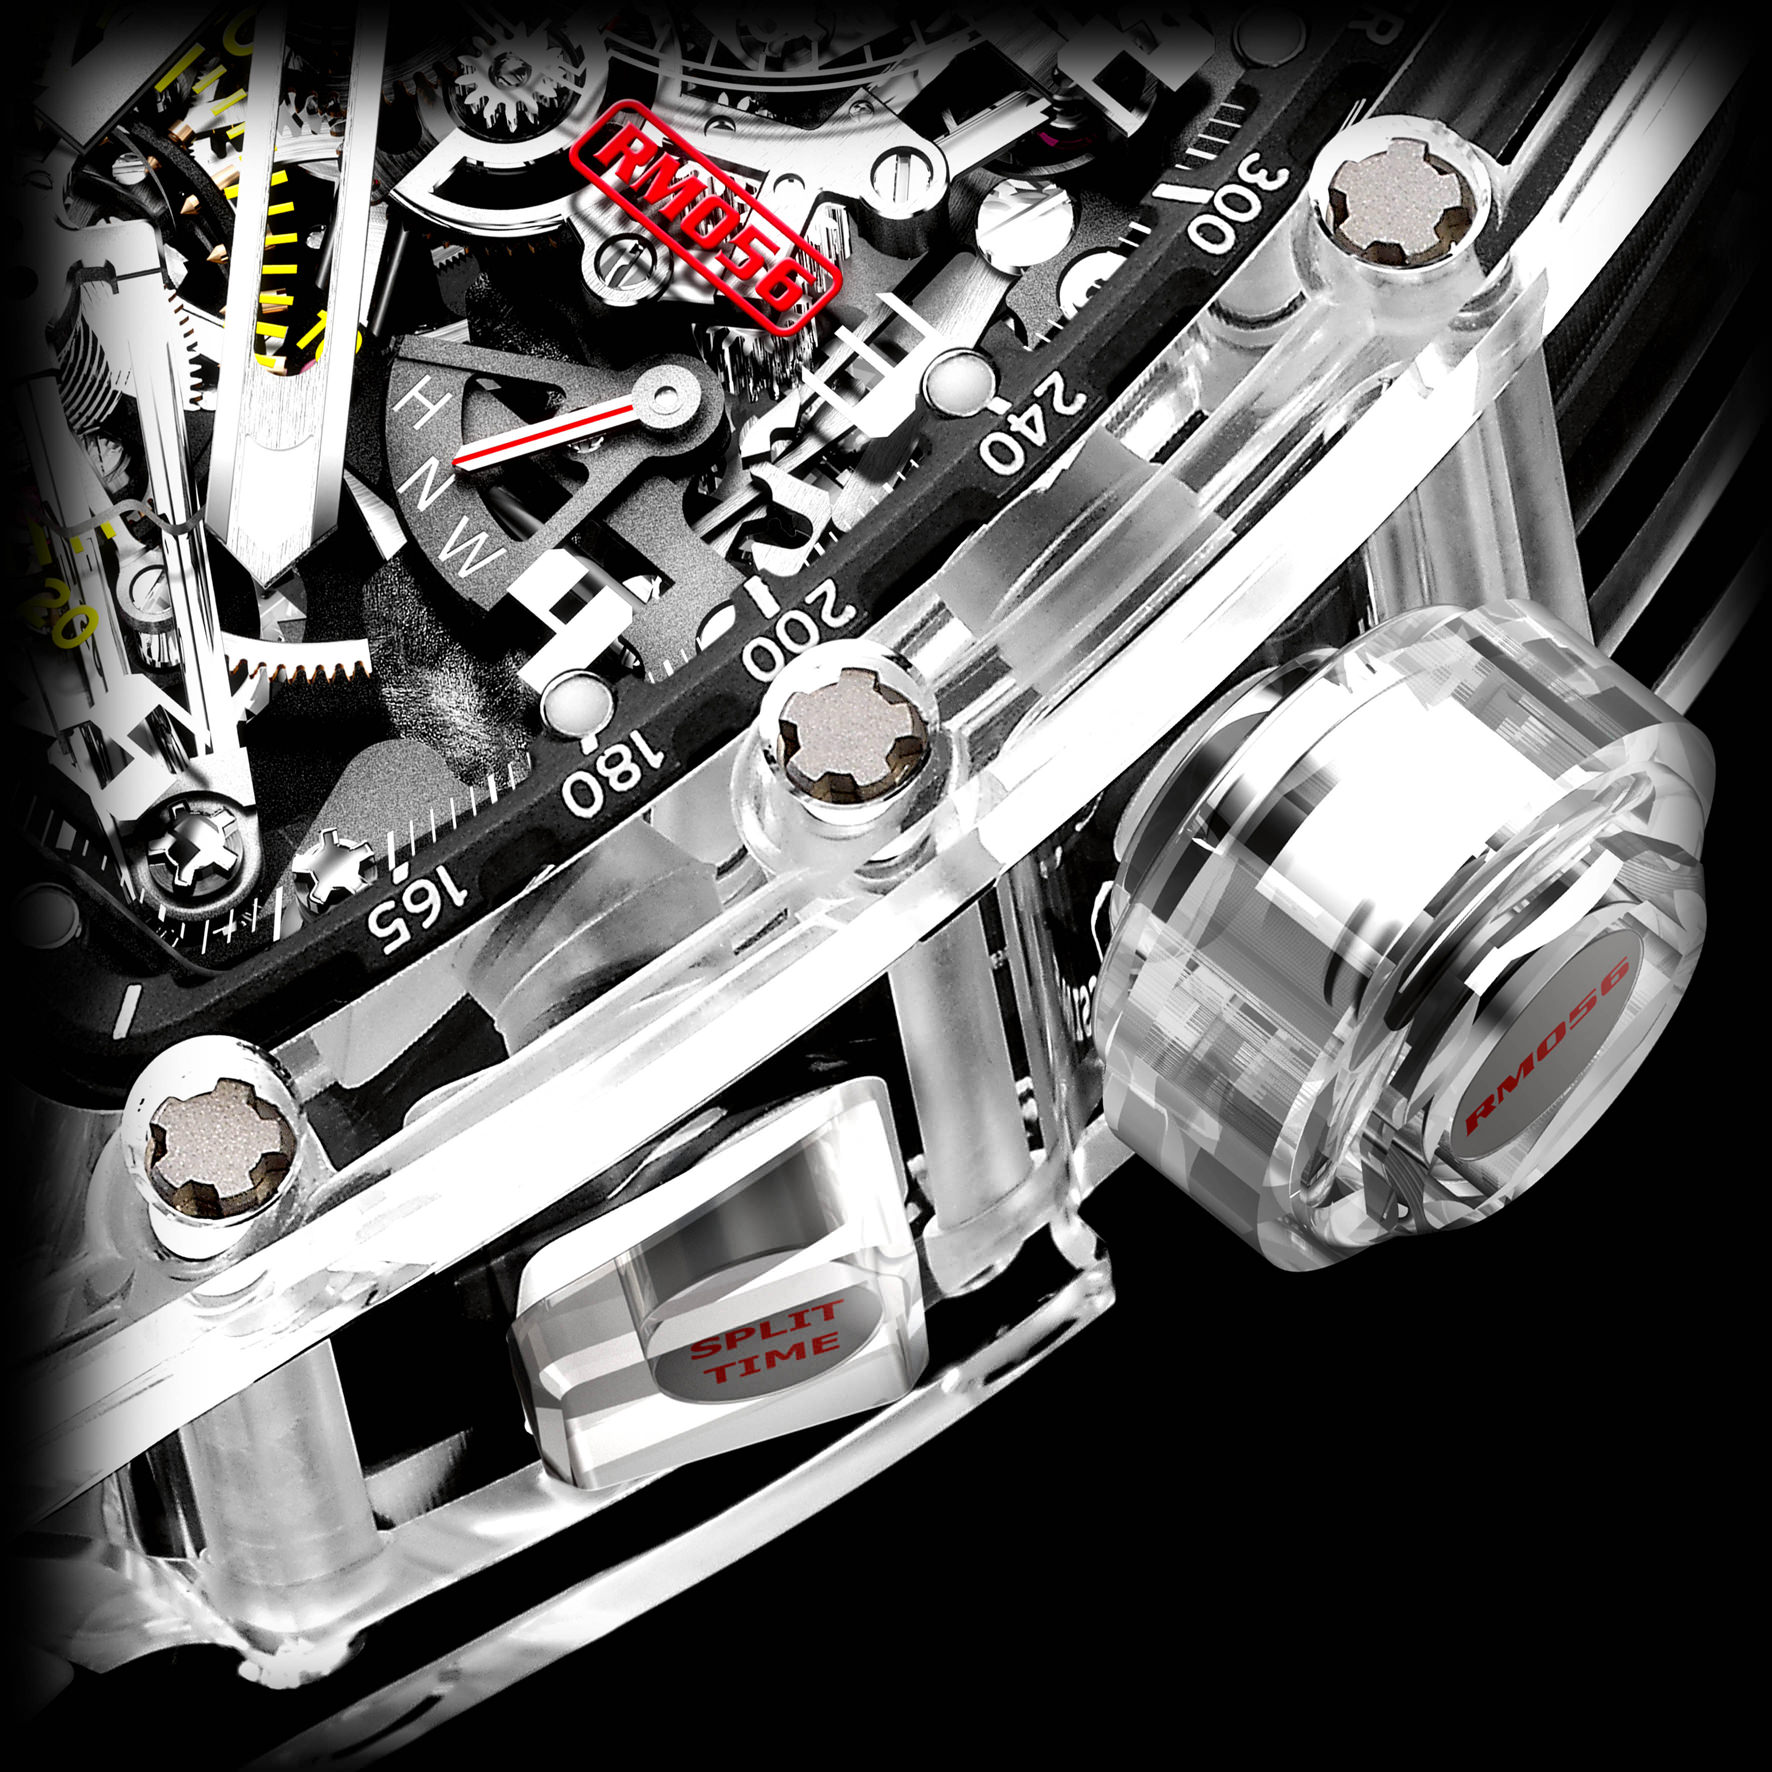 RM-056-Tourbillon-Split-Seconds-Competition-Chronograph-Felipe-Massa-4